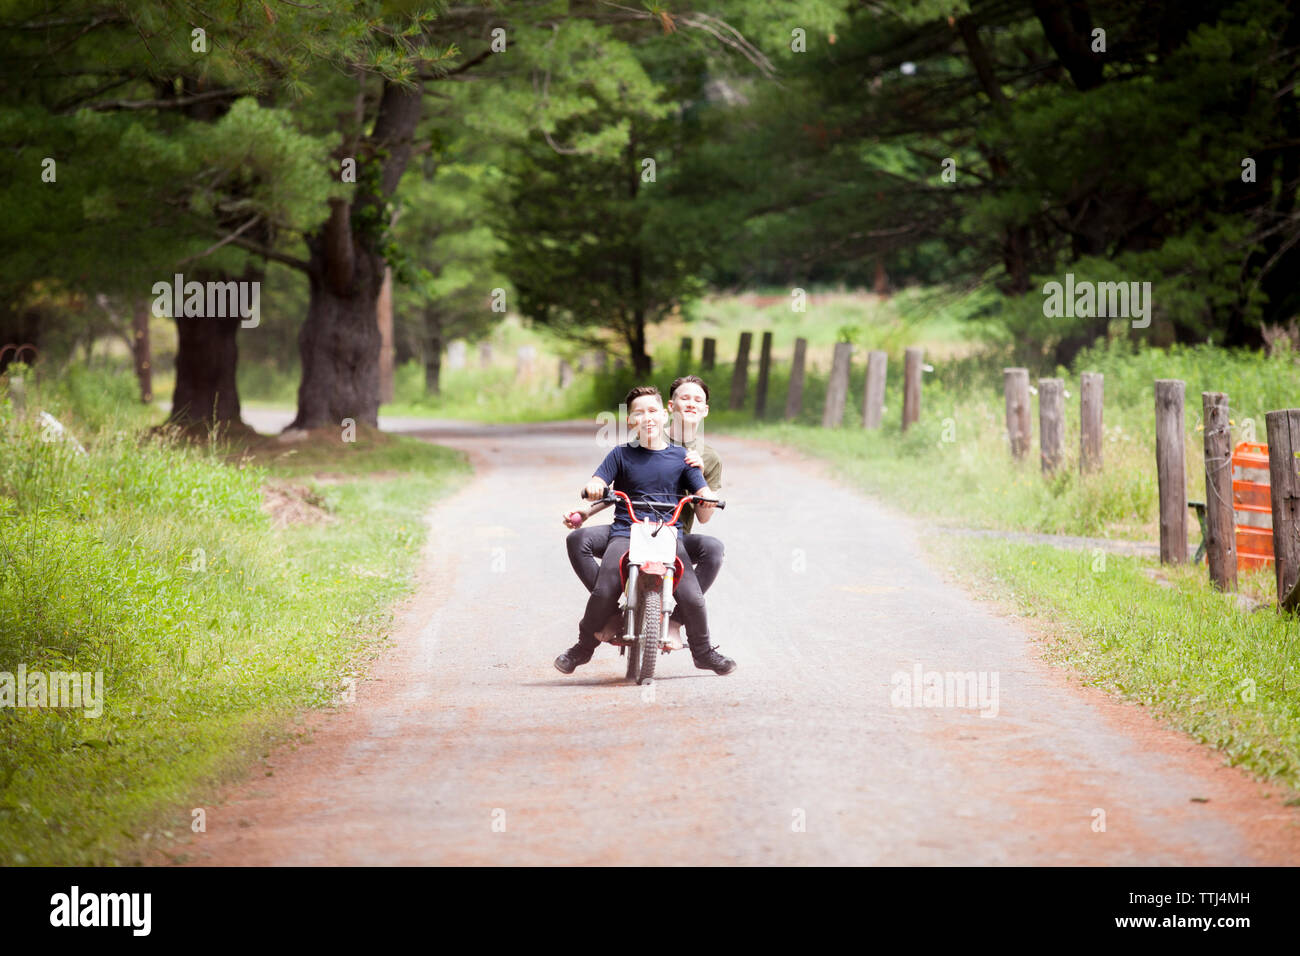 Brothers riding dirt bike on road - Stock Image